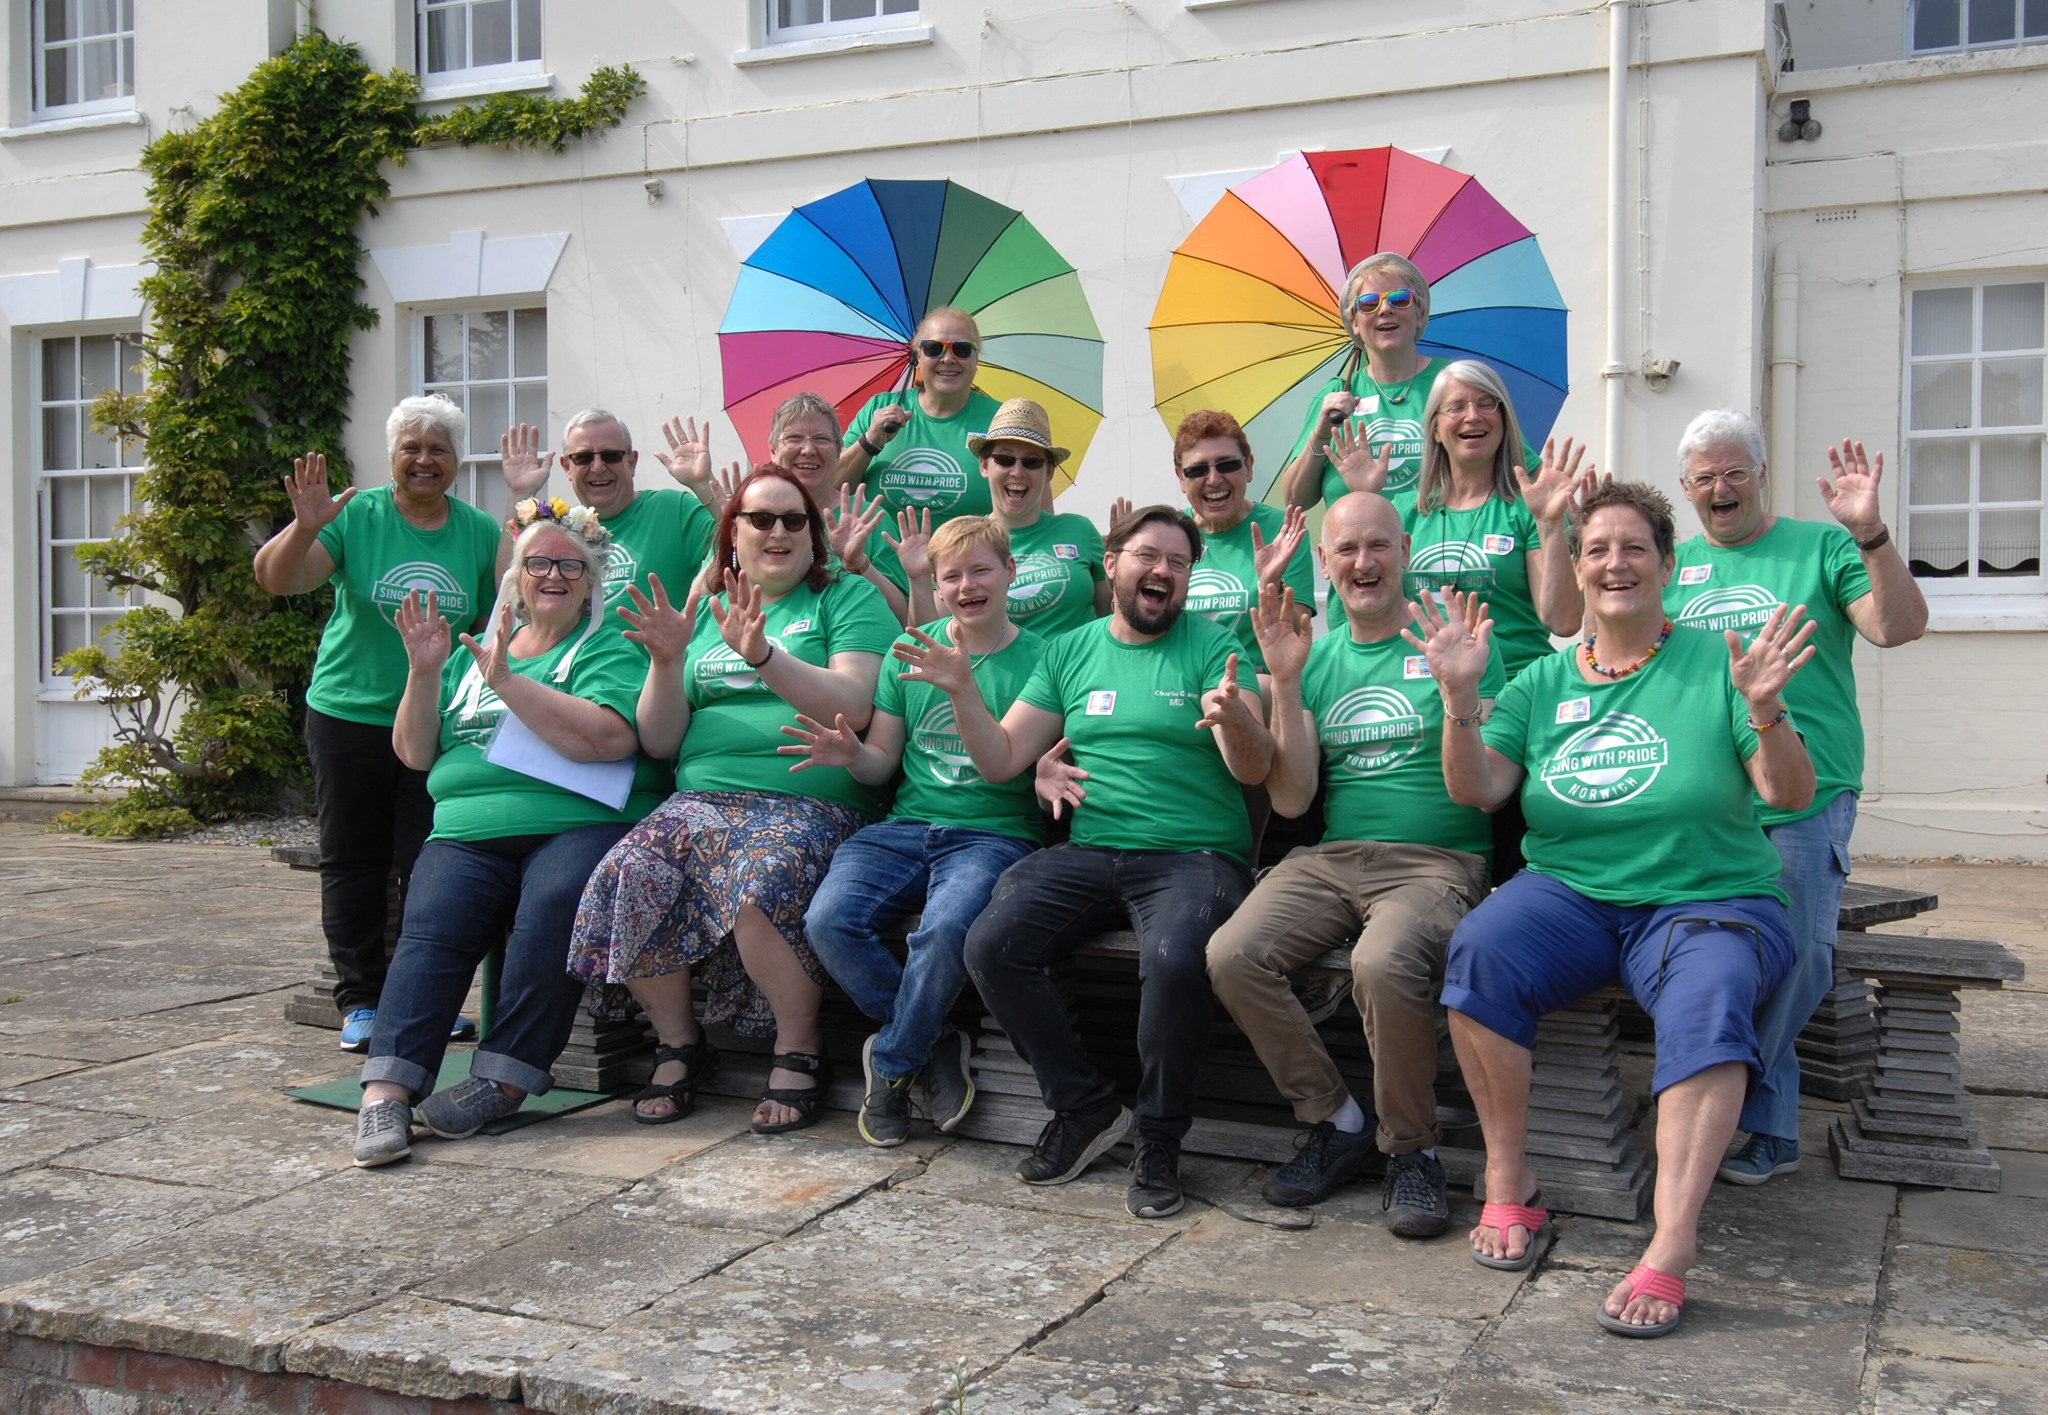 Sing with Pride at Stody